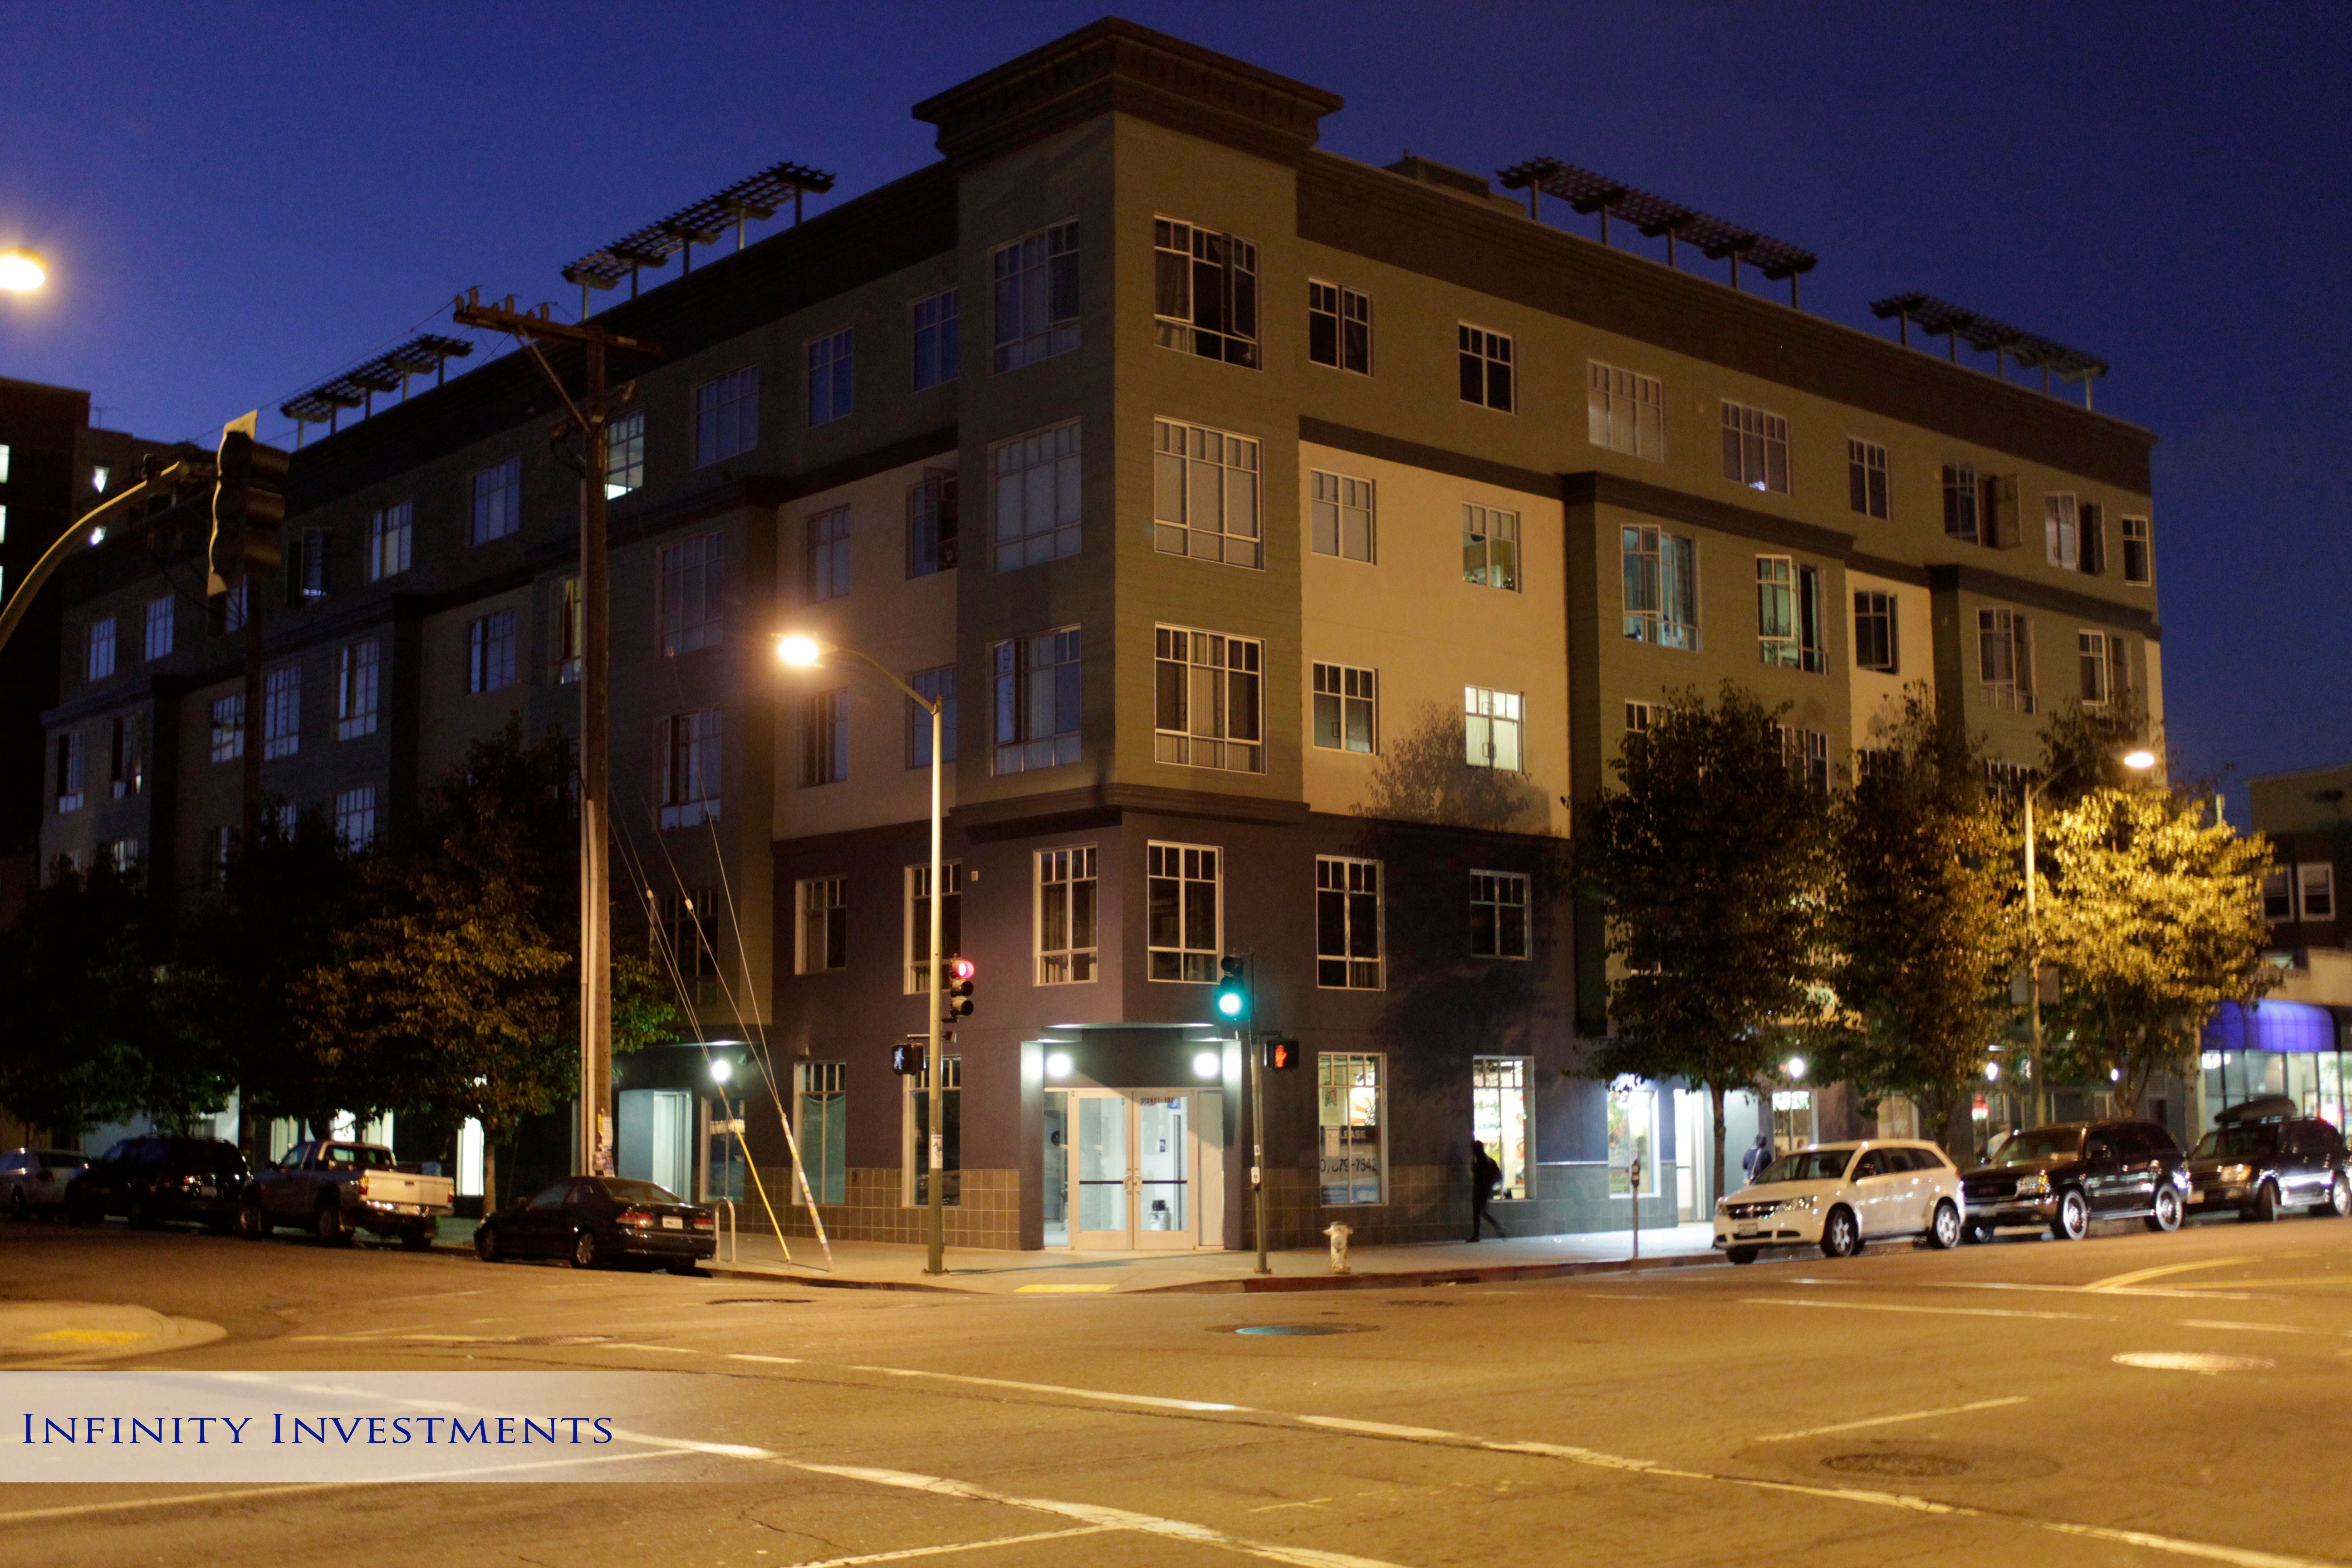 Oakland Investment Real Estate Group